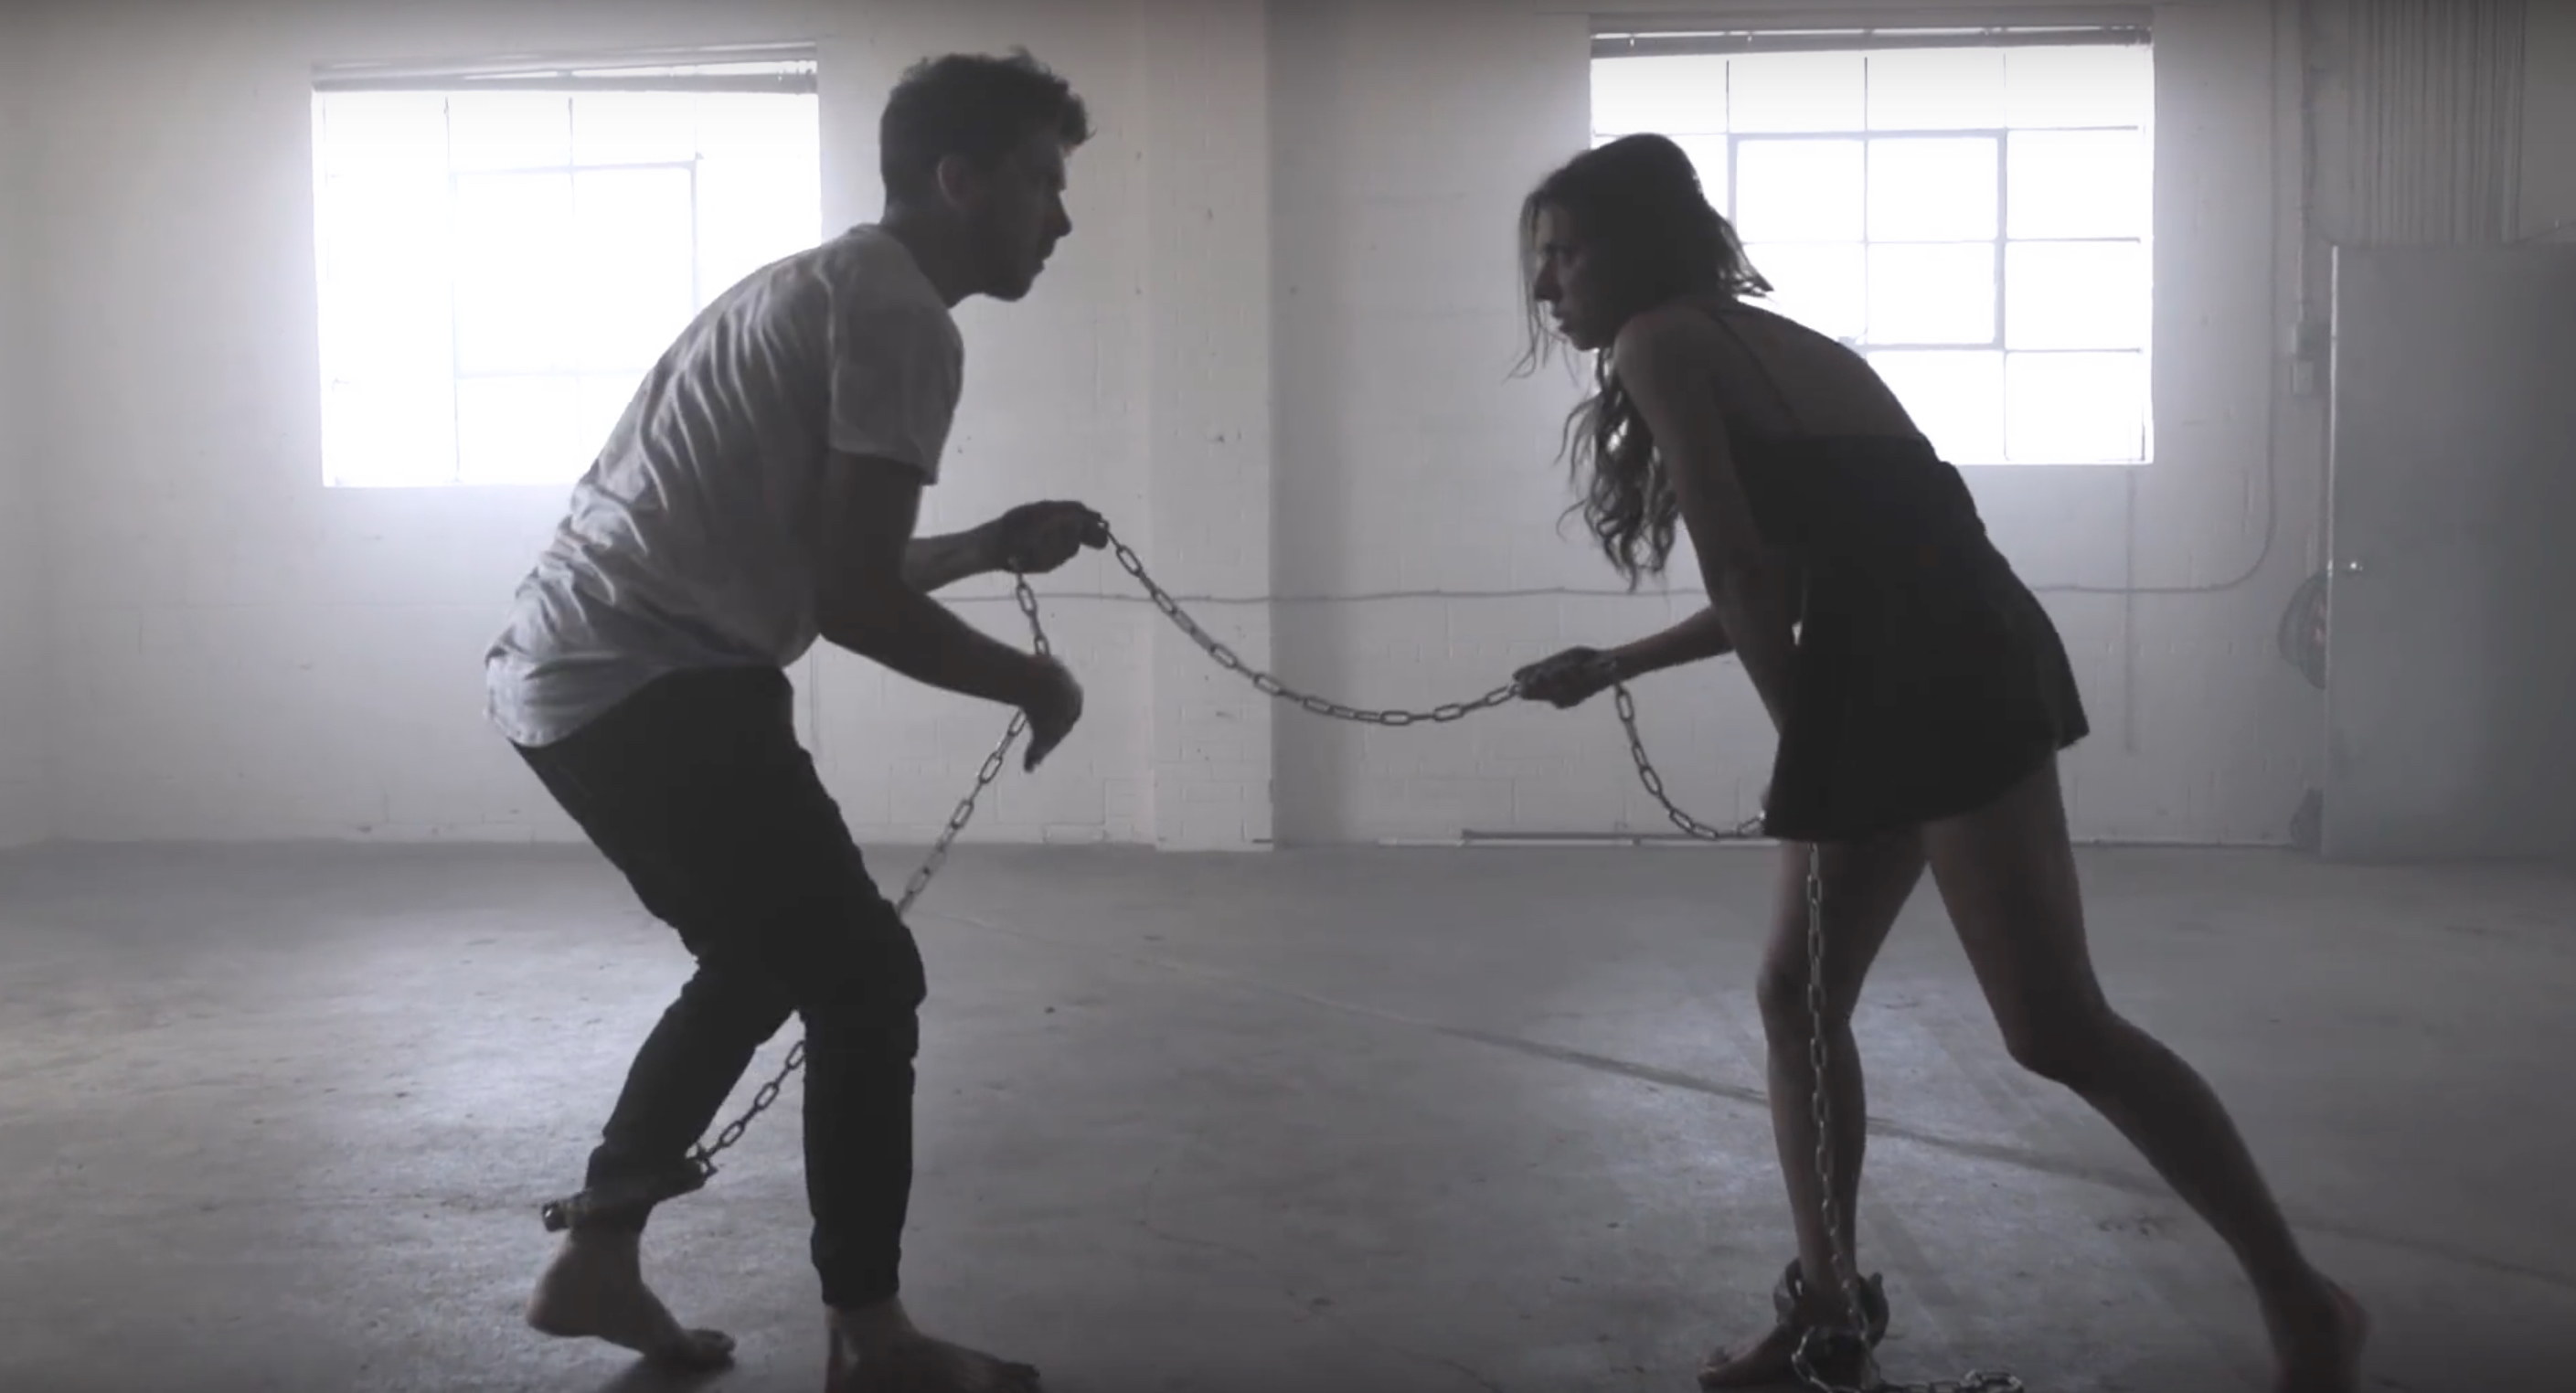 Former lovers end their toxic relationship in this emotional dance video